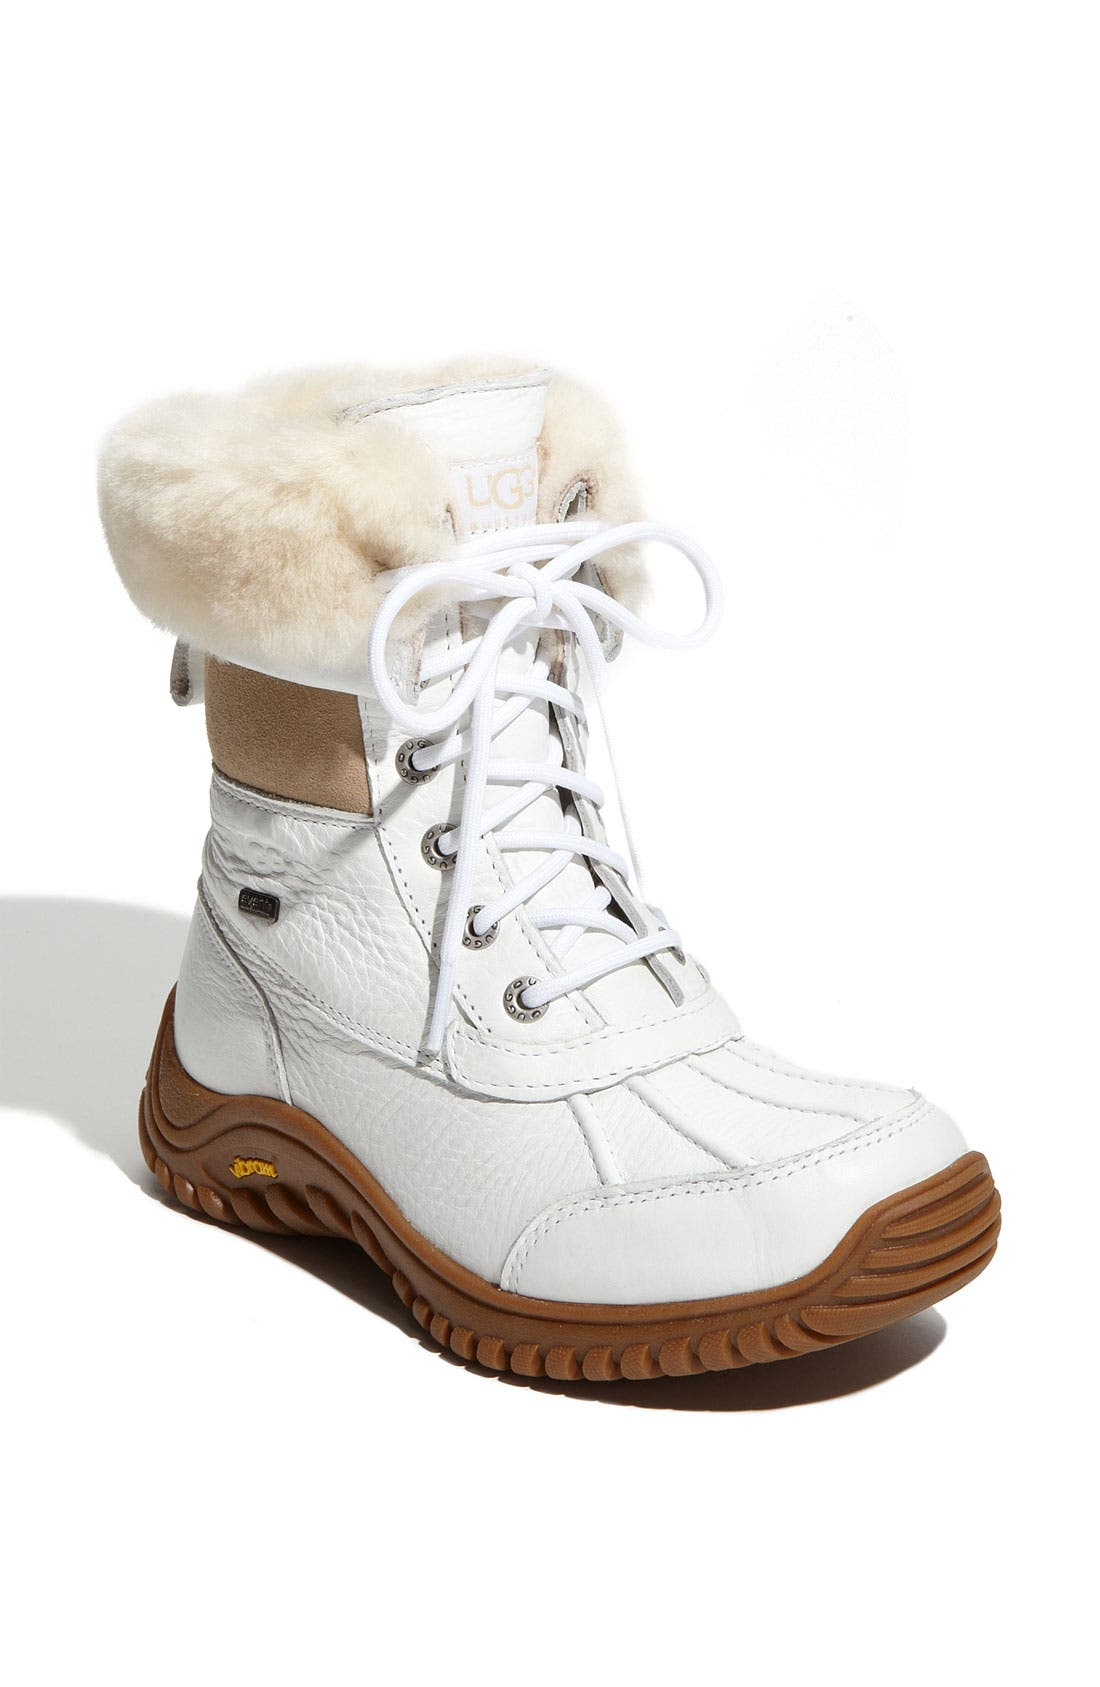 Adirondack II Waterproof Boot,                             Main thumbnail 8, color,